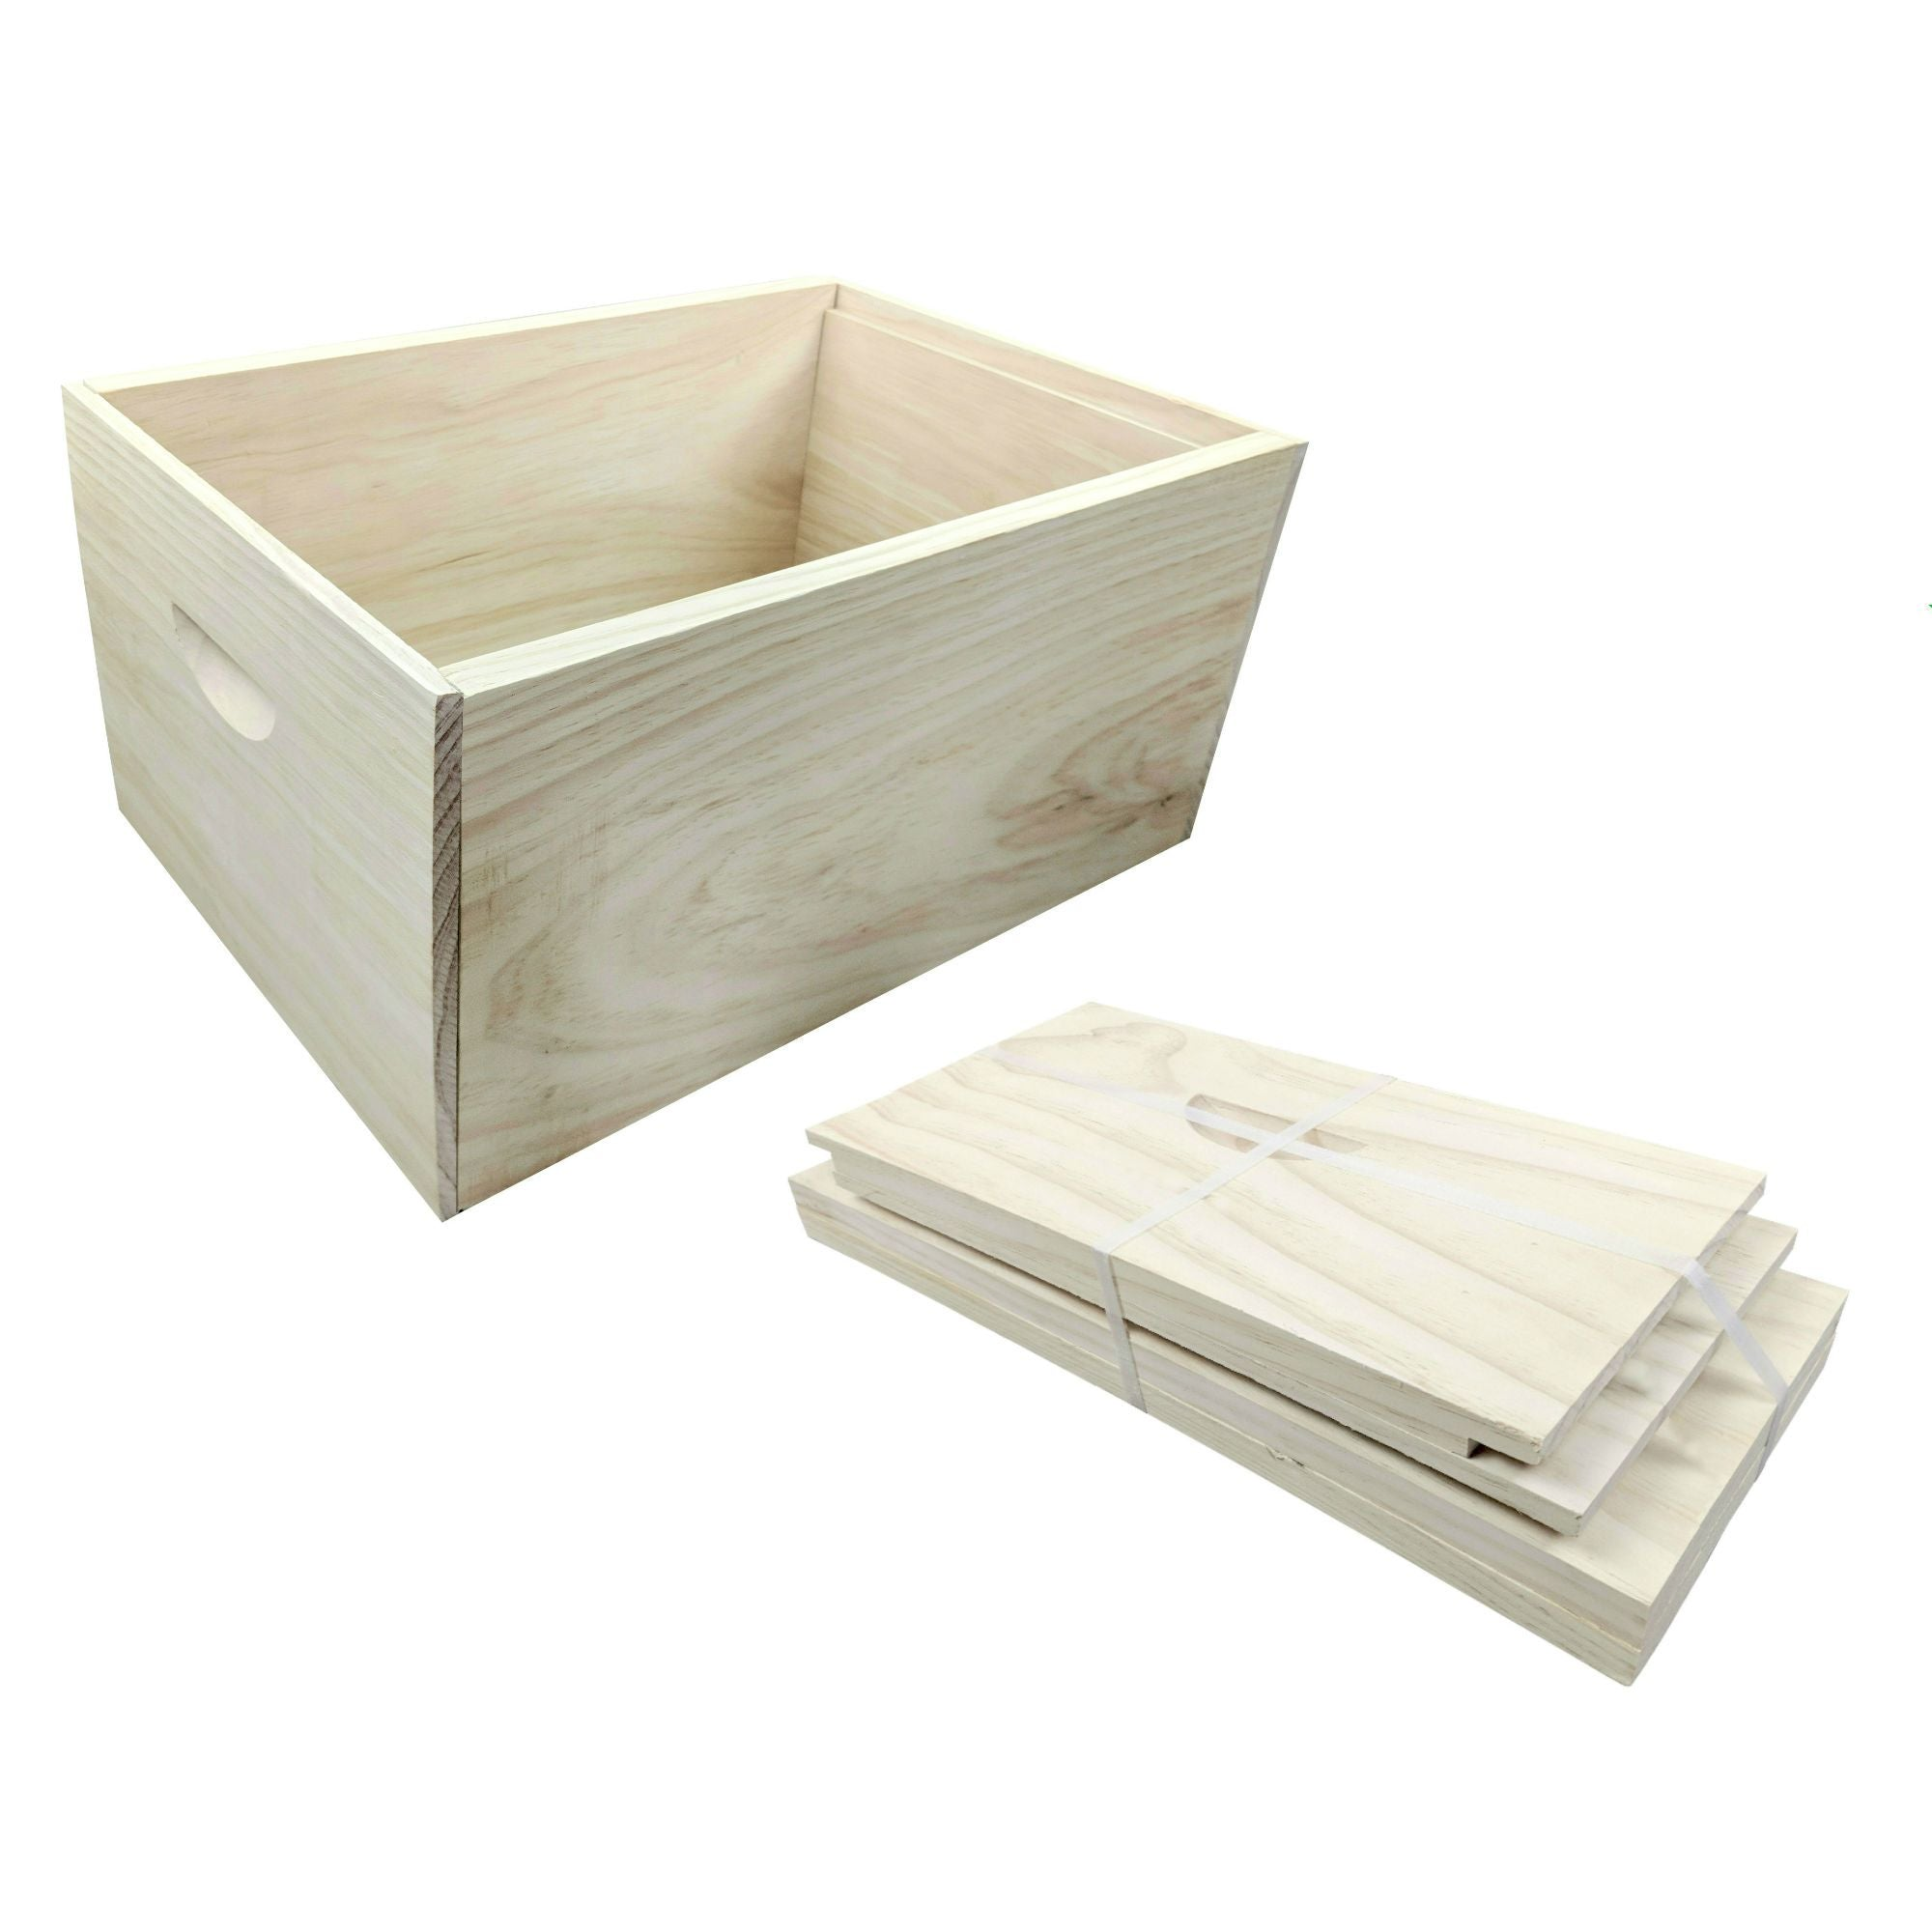 10 Frame Beehive super box rebate joint